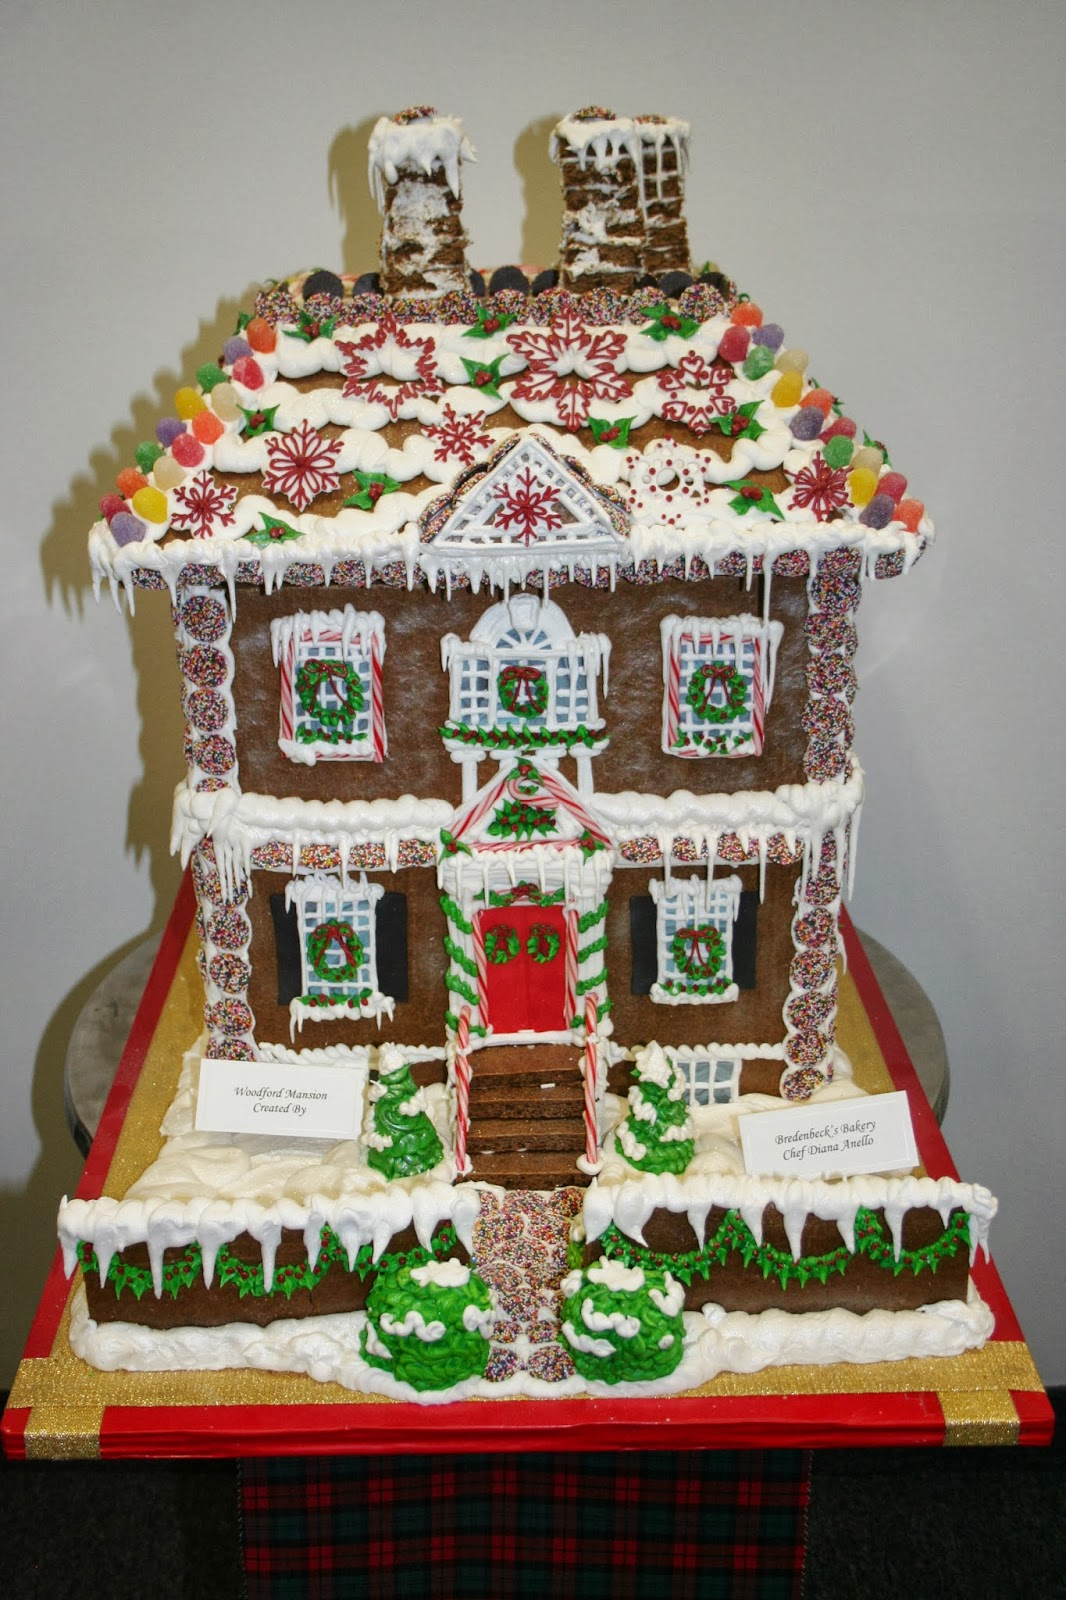 Delco Daily Top Ten Top 10 Fairmount Park Gingerbread Houses